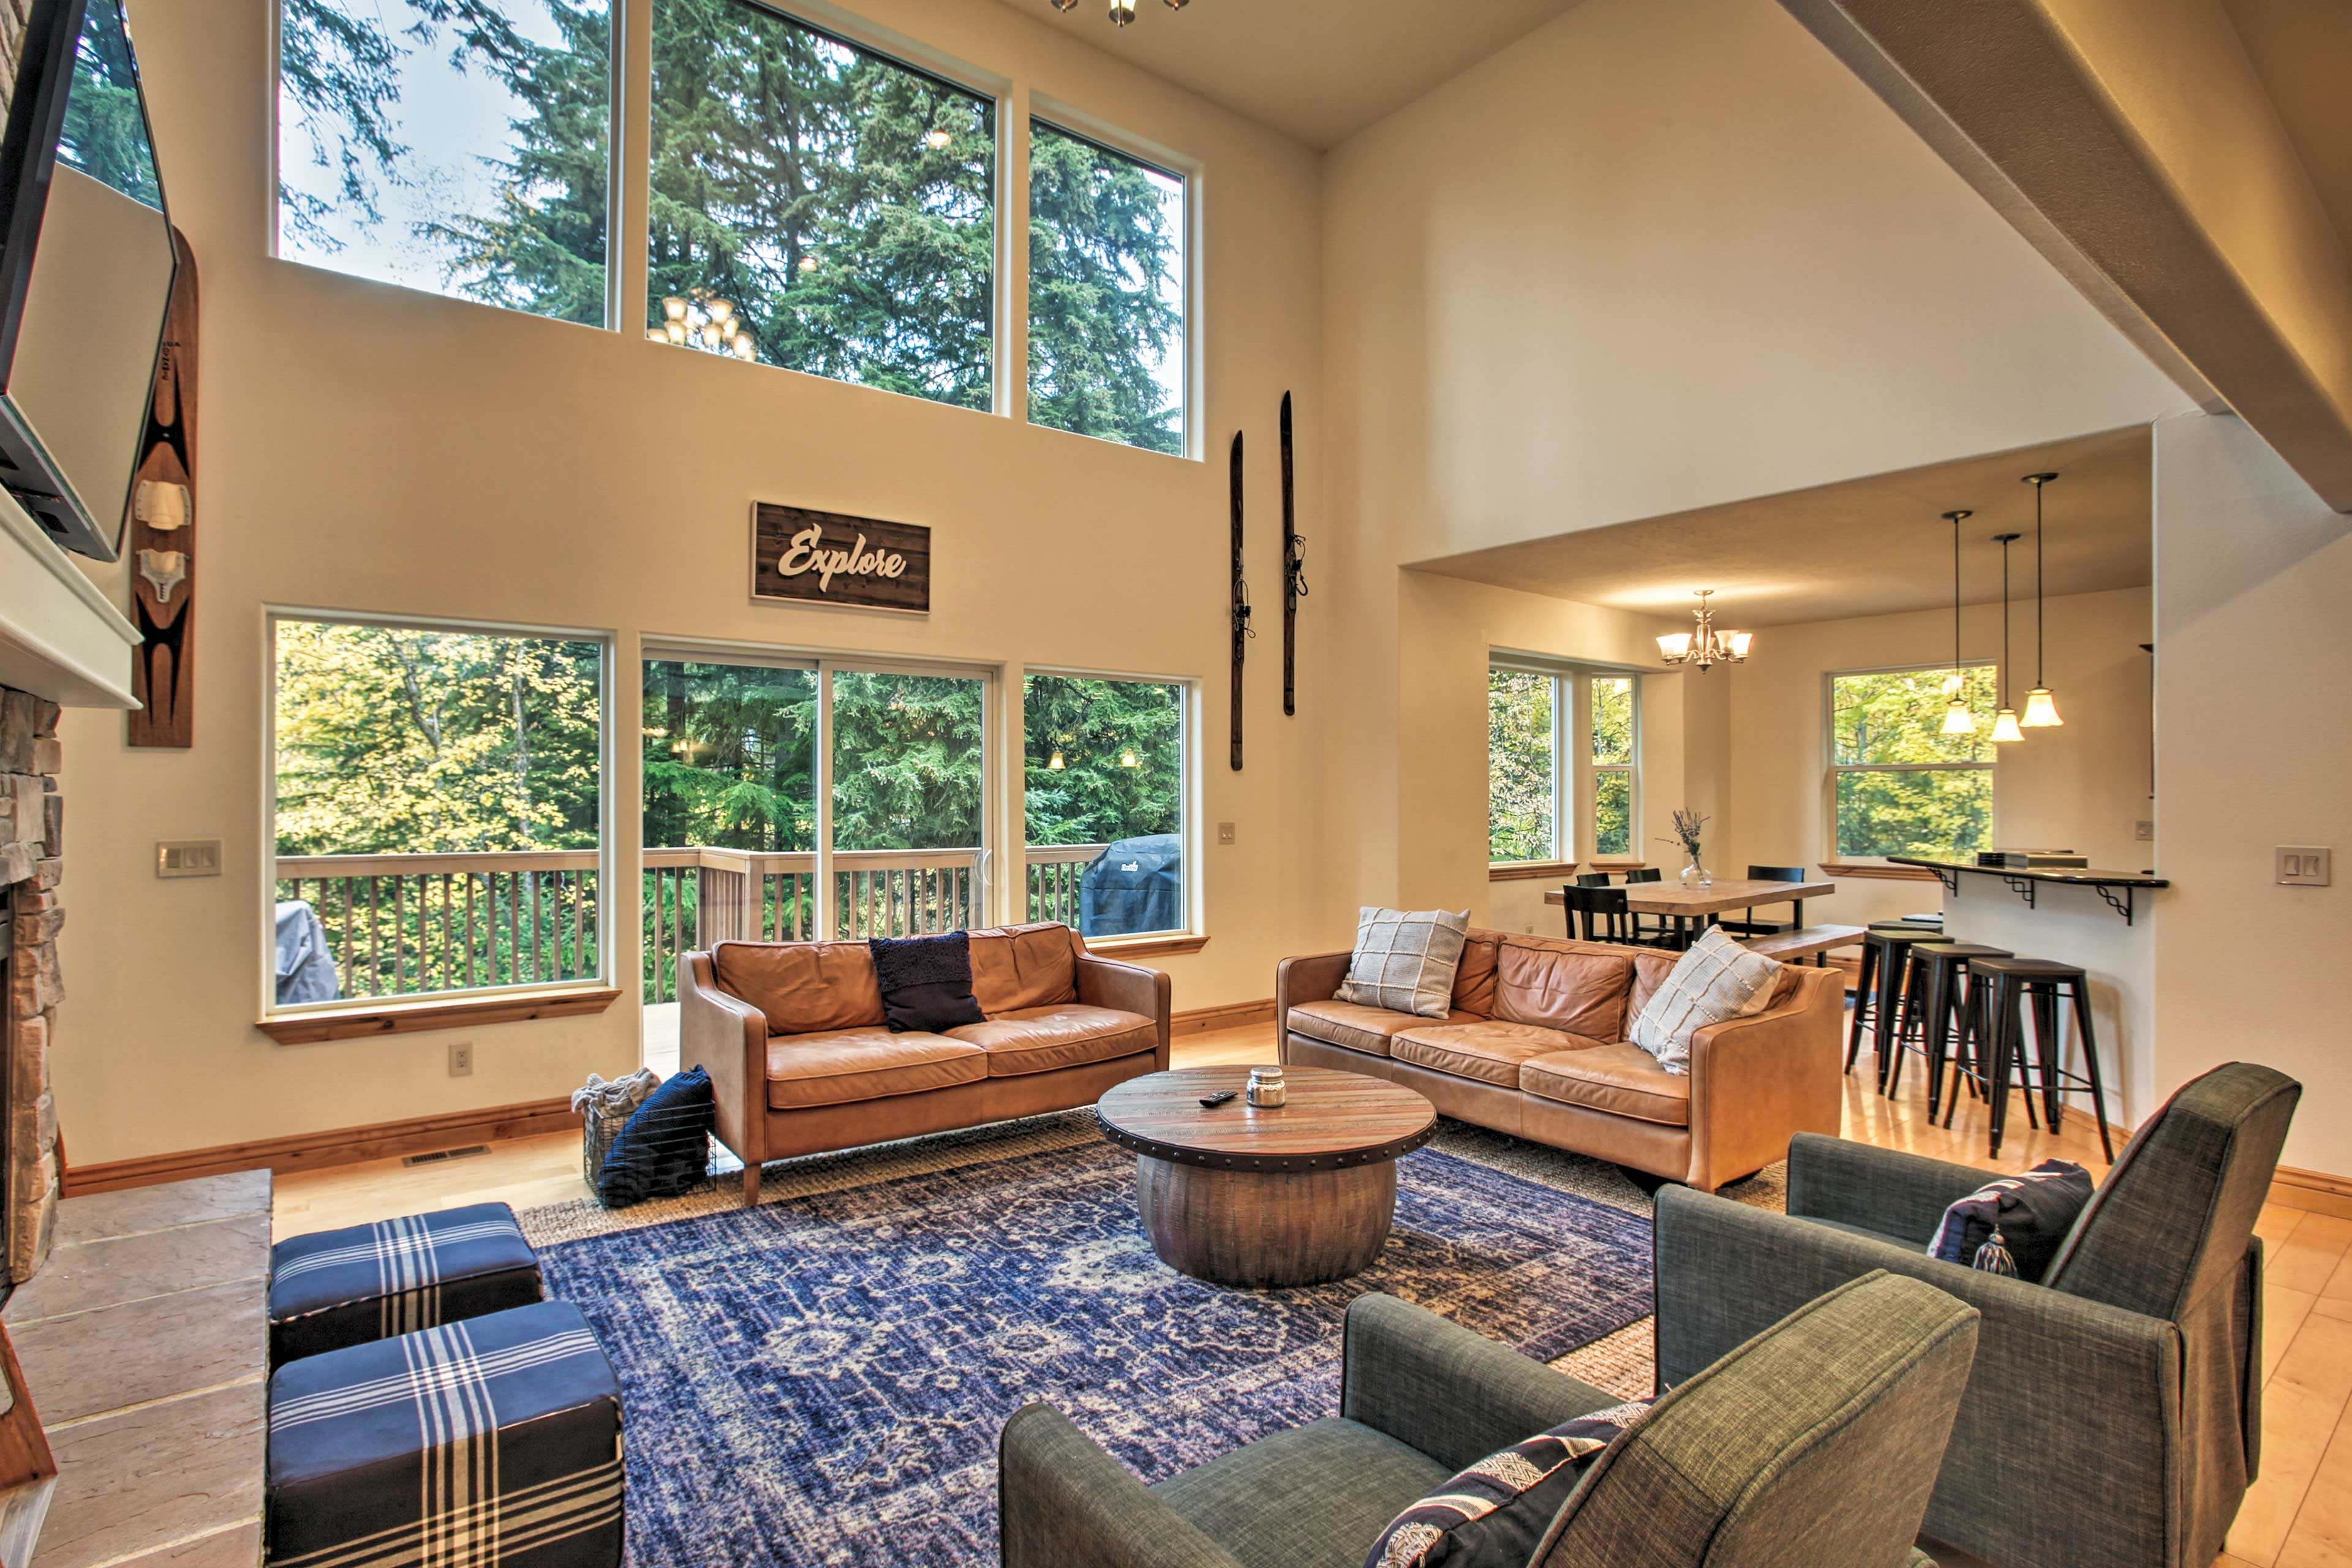 Explore all the Hayden Lake area offers with this property as your home base.